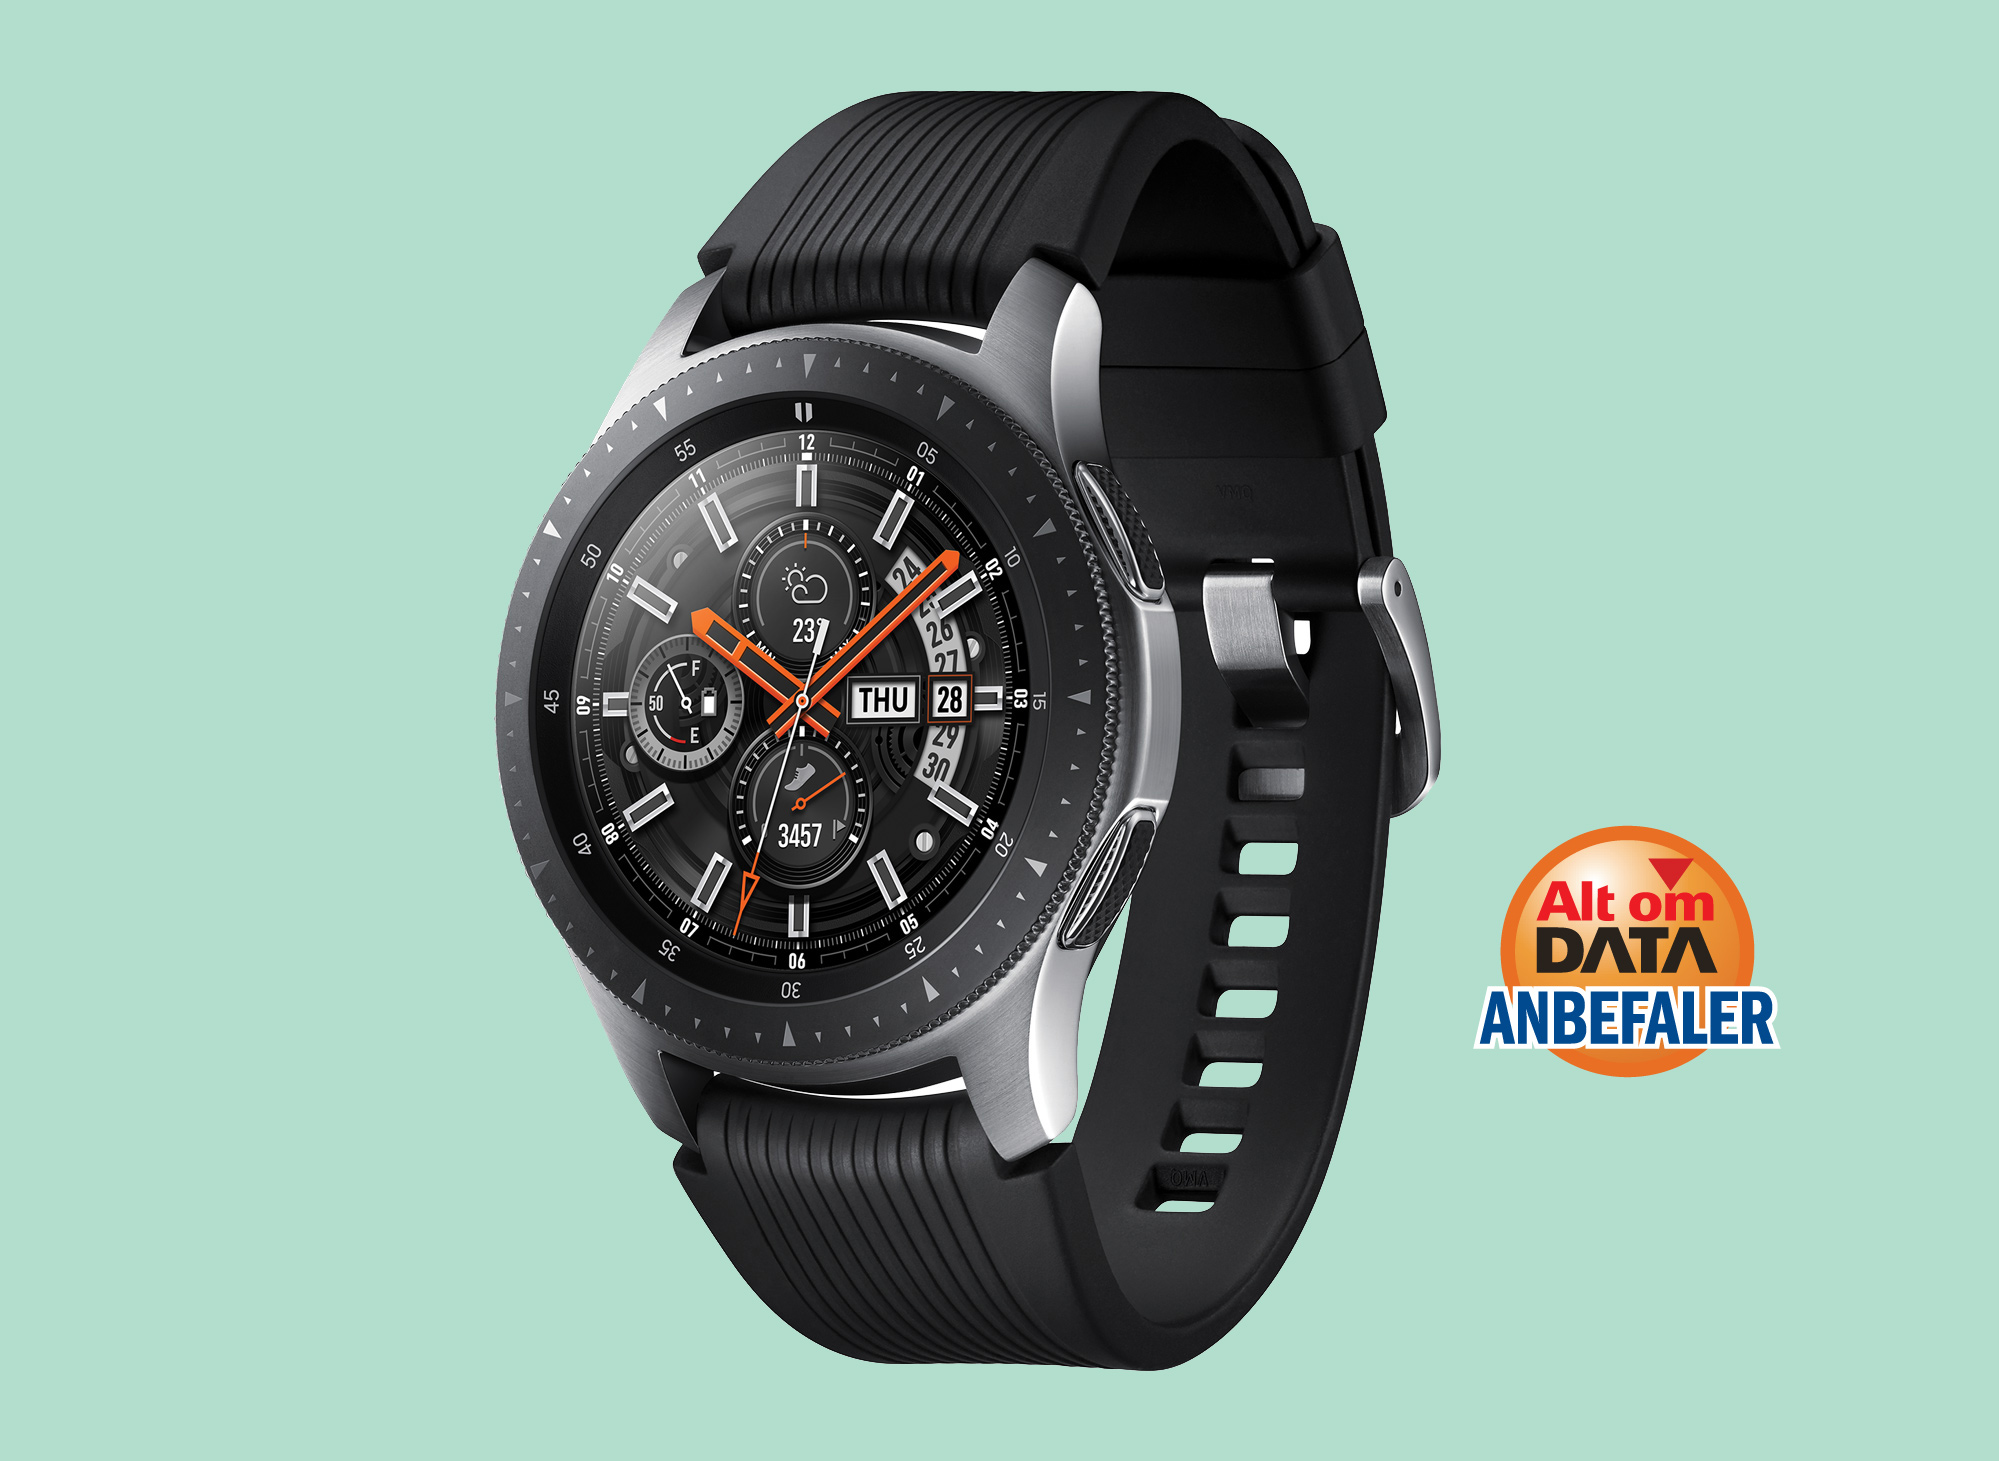 Samsung Galaxy Watch [TEST]: Stilsikkert smartwatch